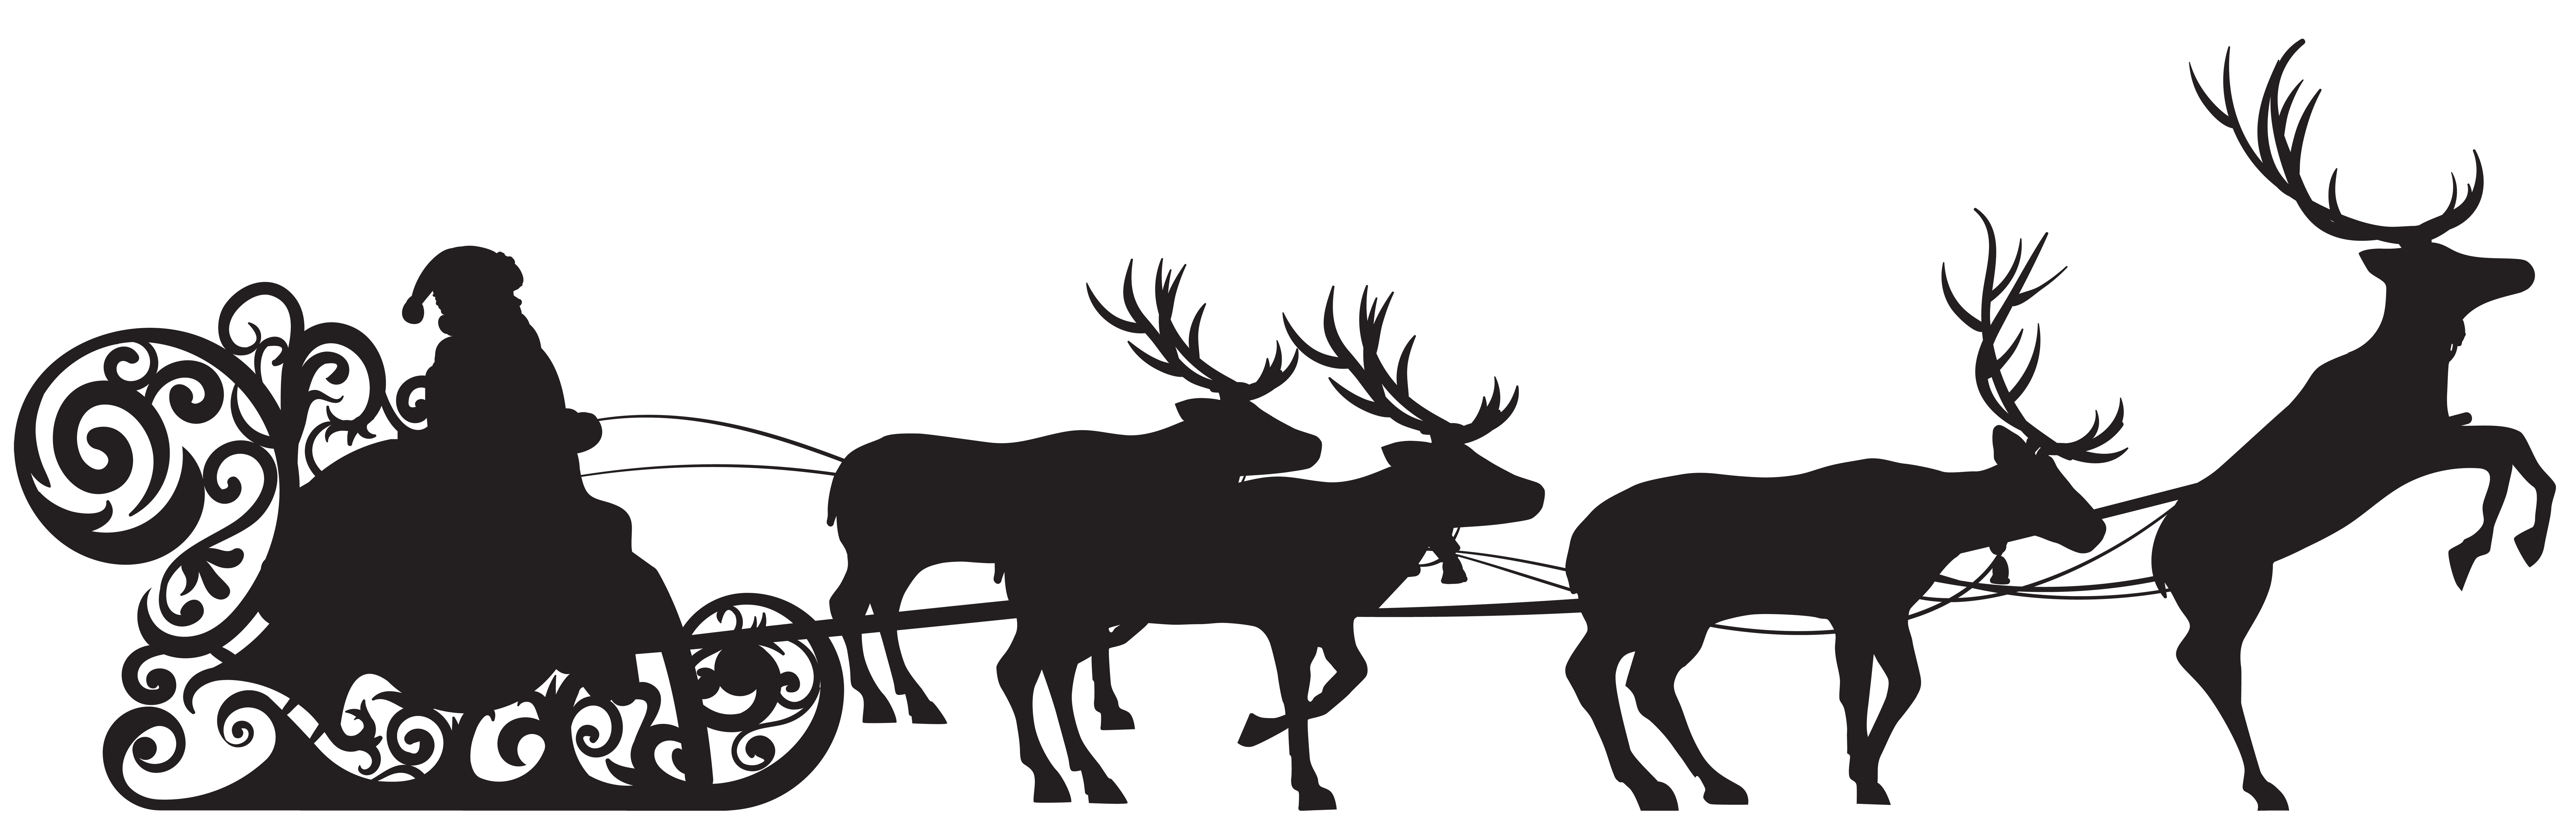 Santa and reindeer silhouette png. Claus sled clip art